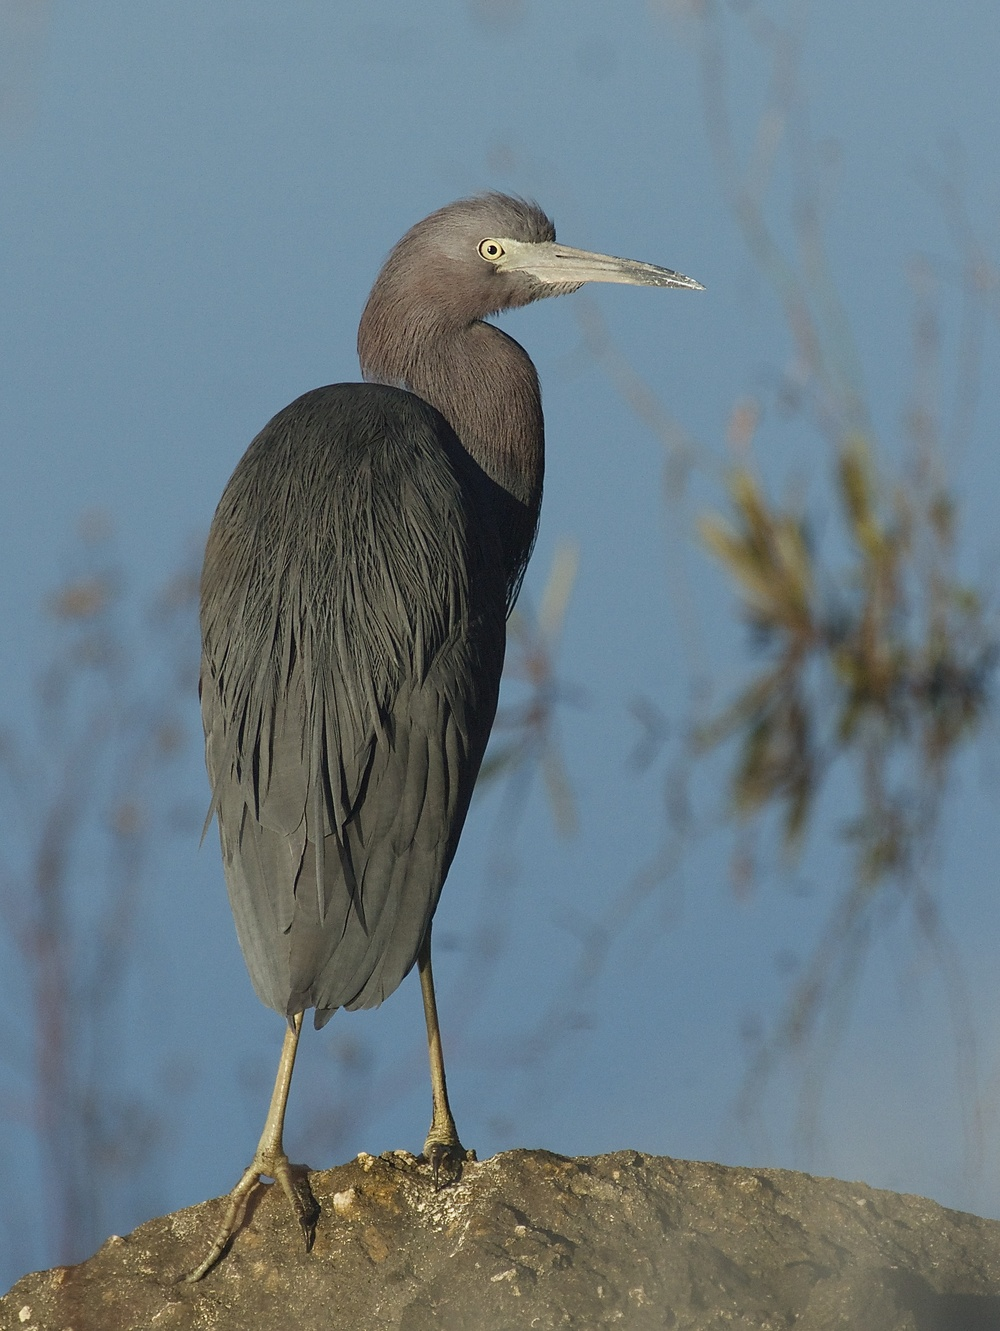 This Little Blue Heron, some Snowy Egrets and my Tricolored Heron Friend soon join Old Man River.